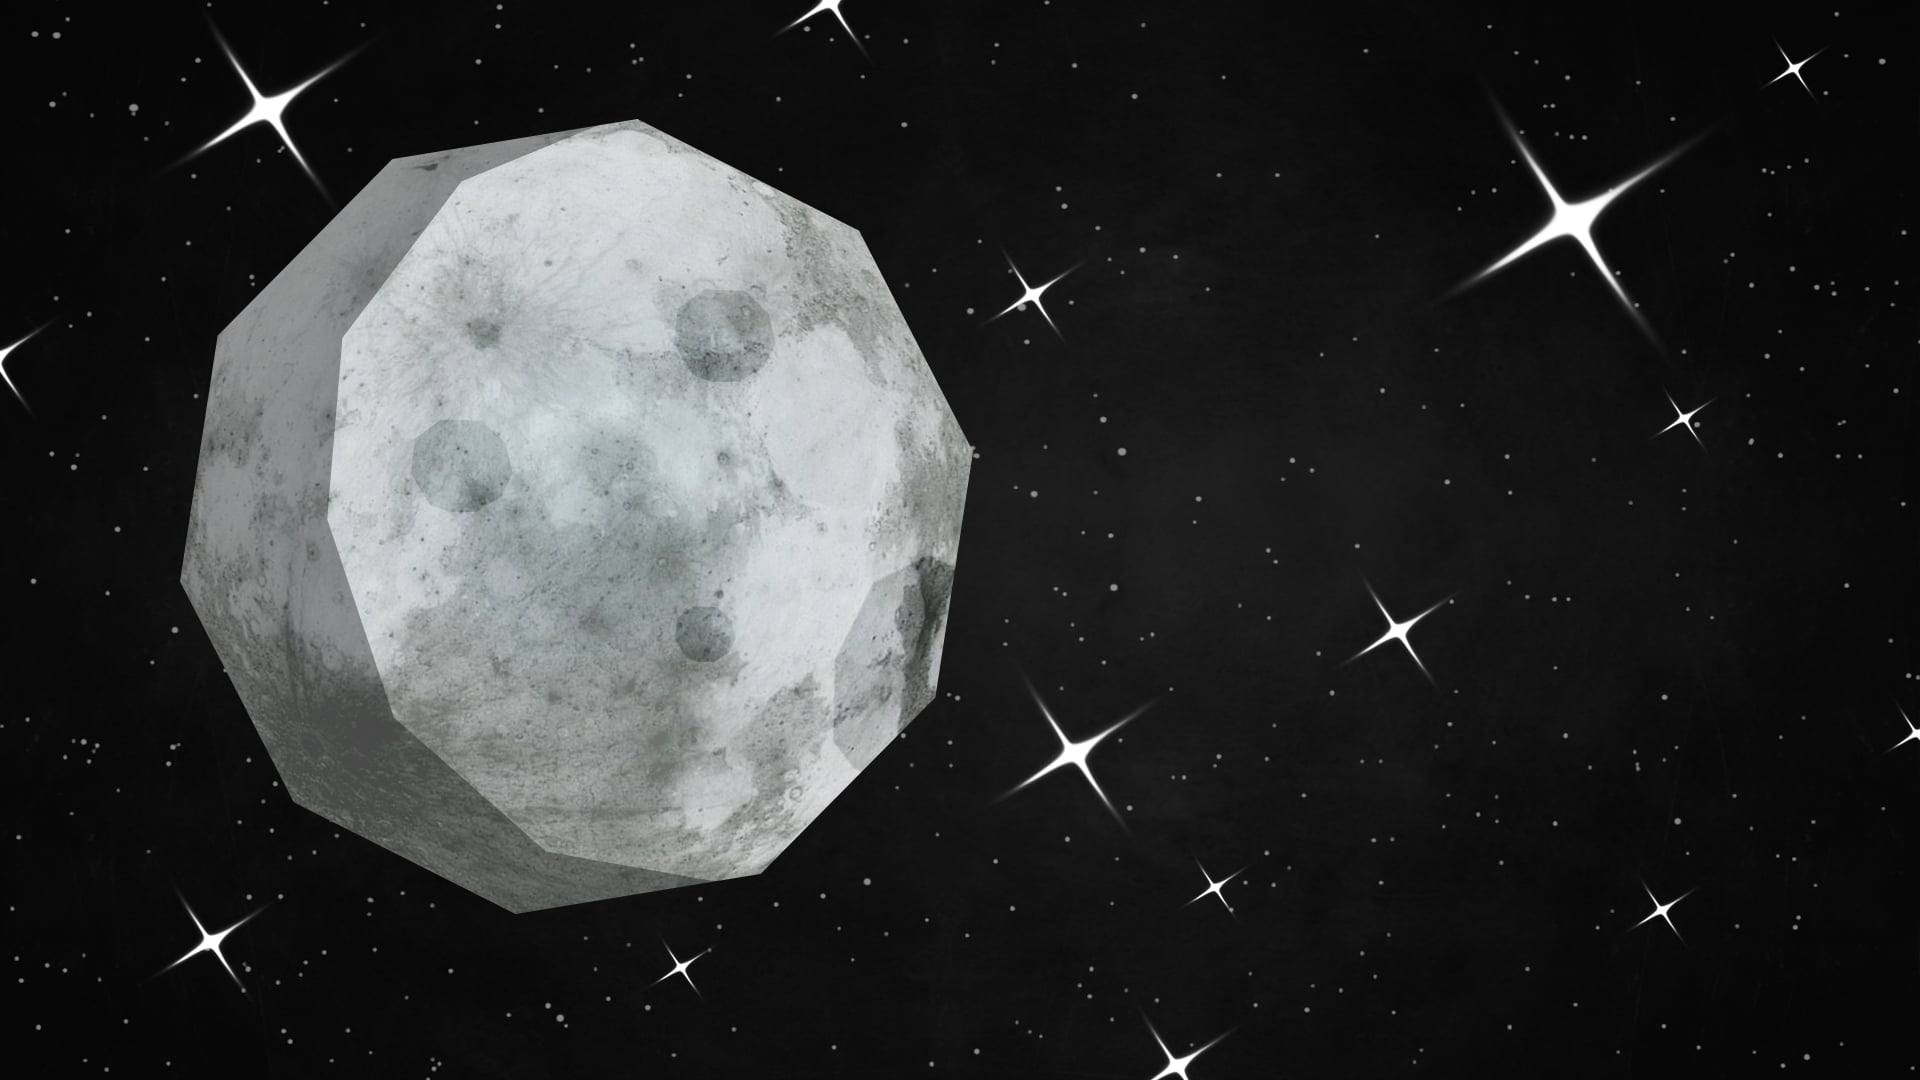 1920x1080 Gray moon illustration, Moon, stars, simple, geometry HD ...